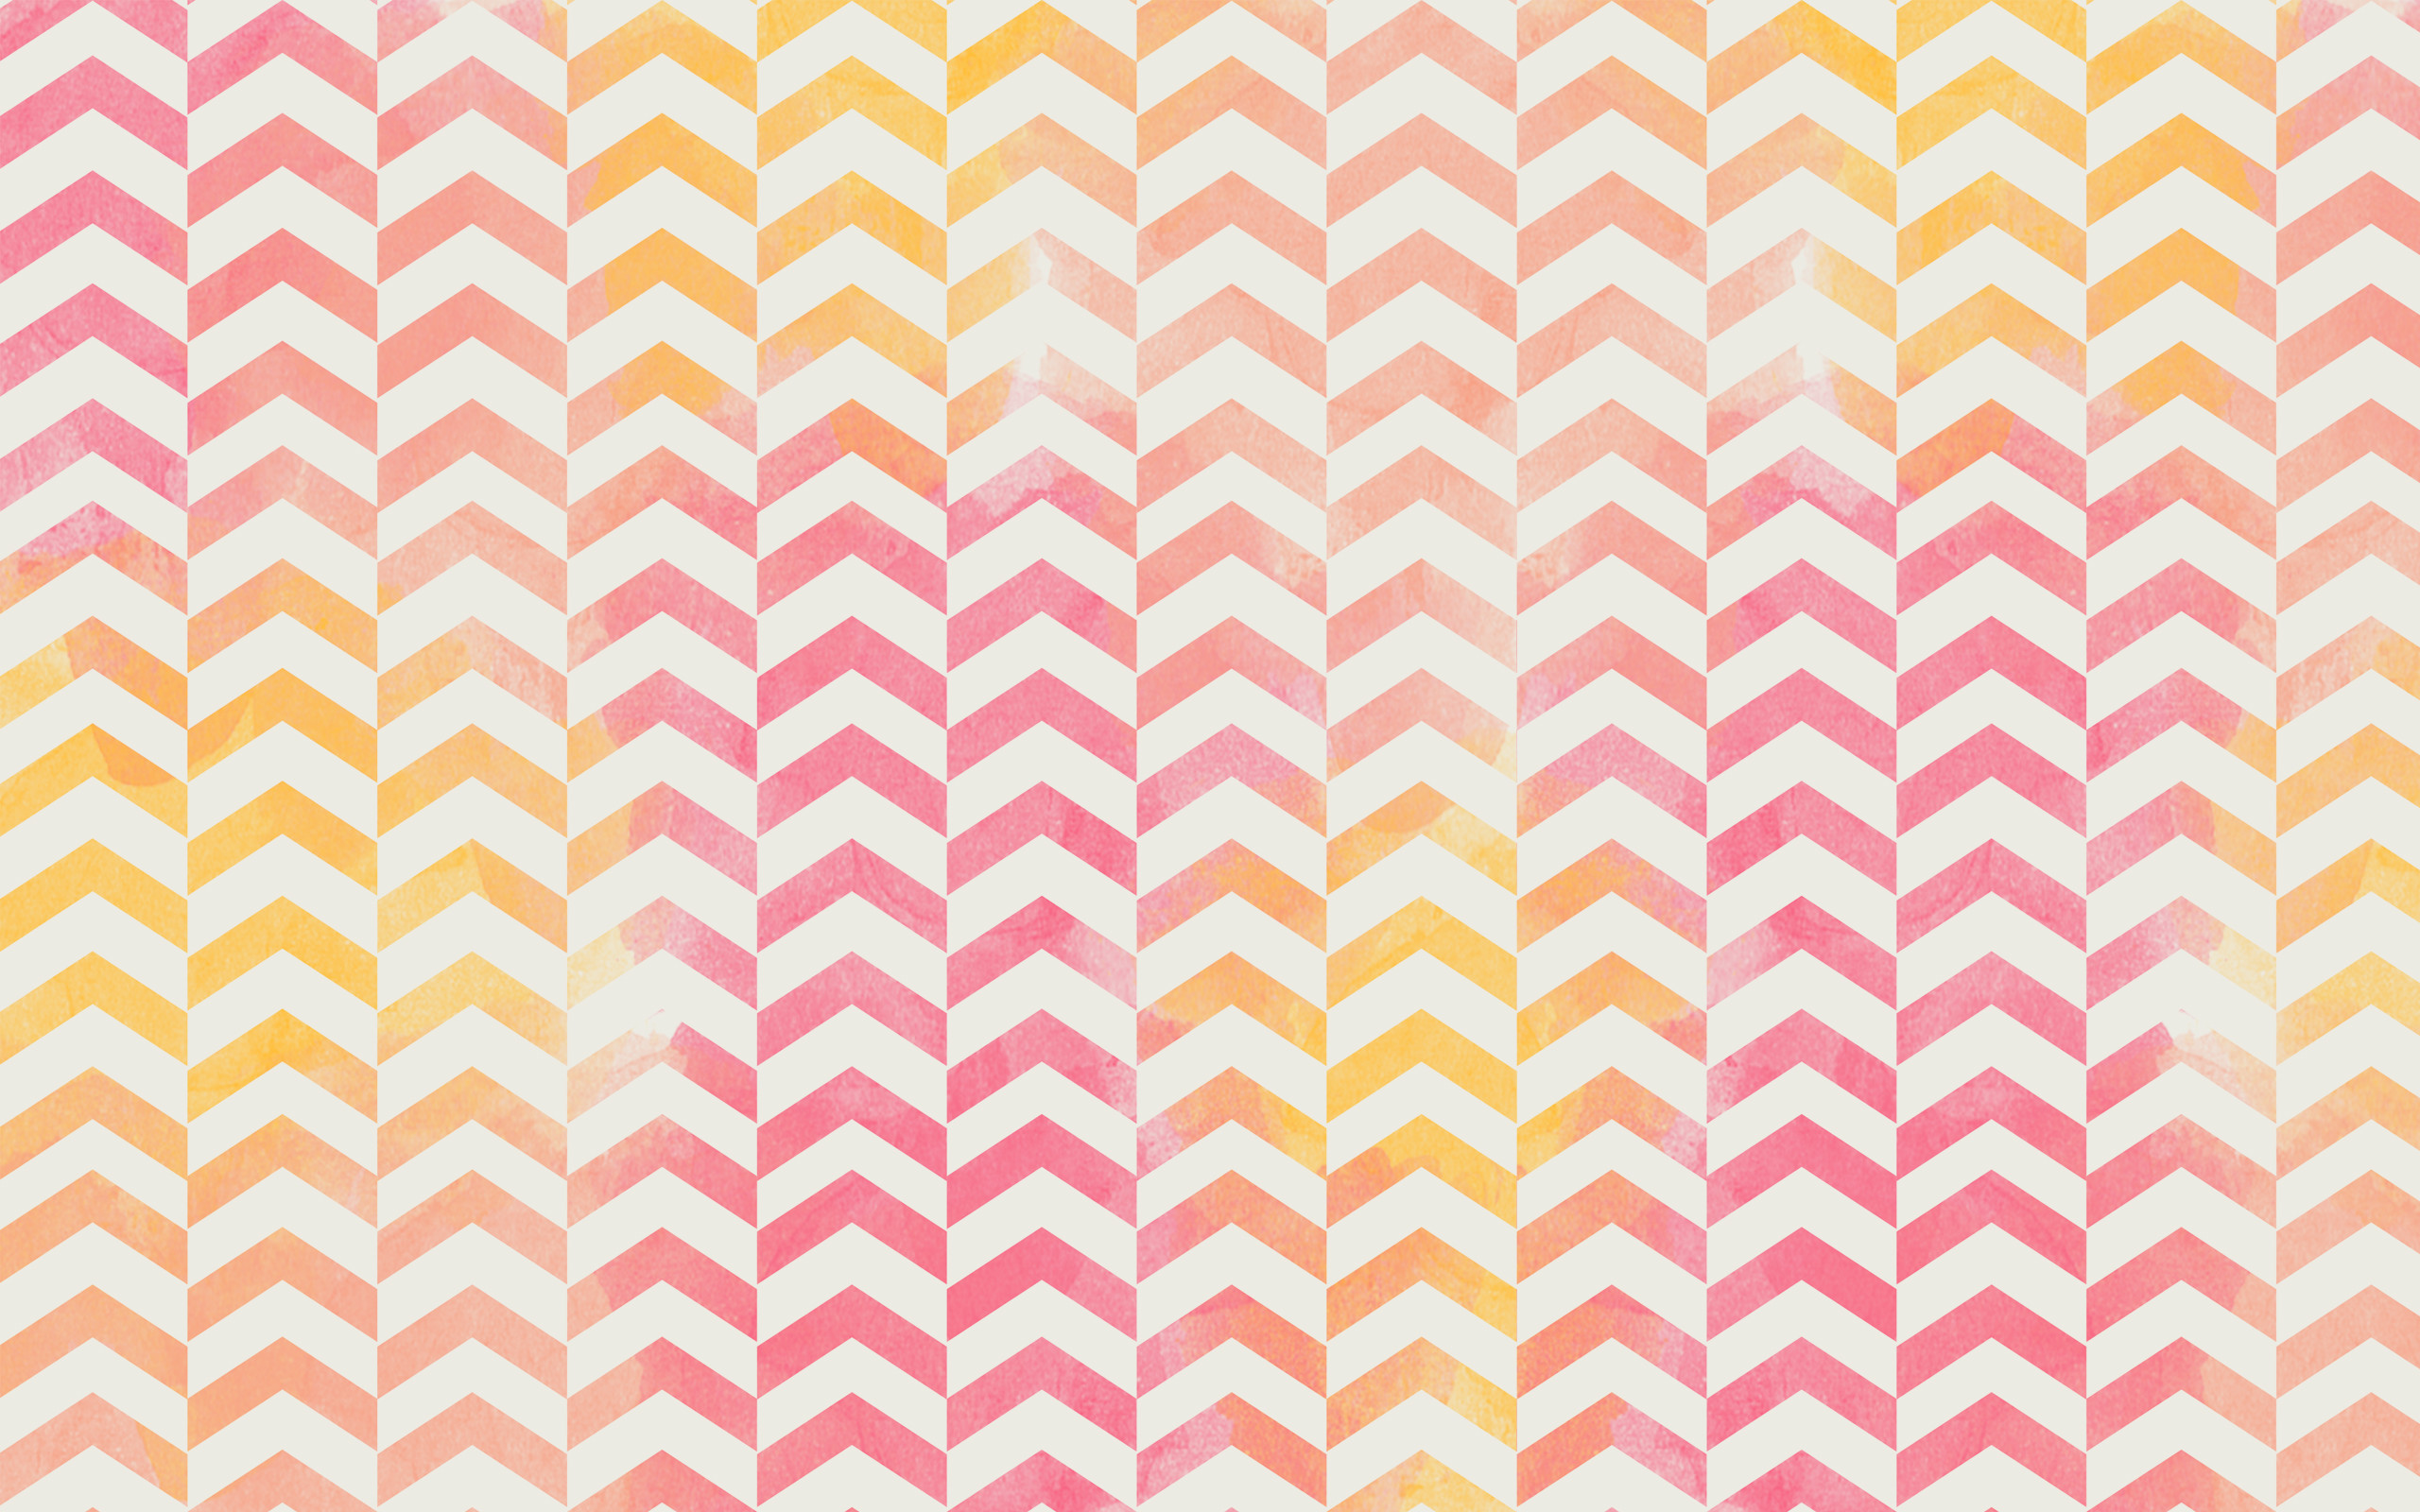 2560x1600 Chevron Desktop Wallpaper , Glitter Chevron Desktop Wallpaper .